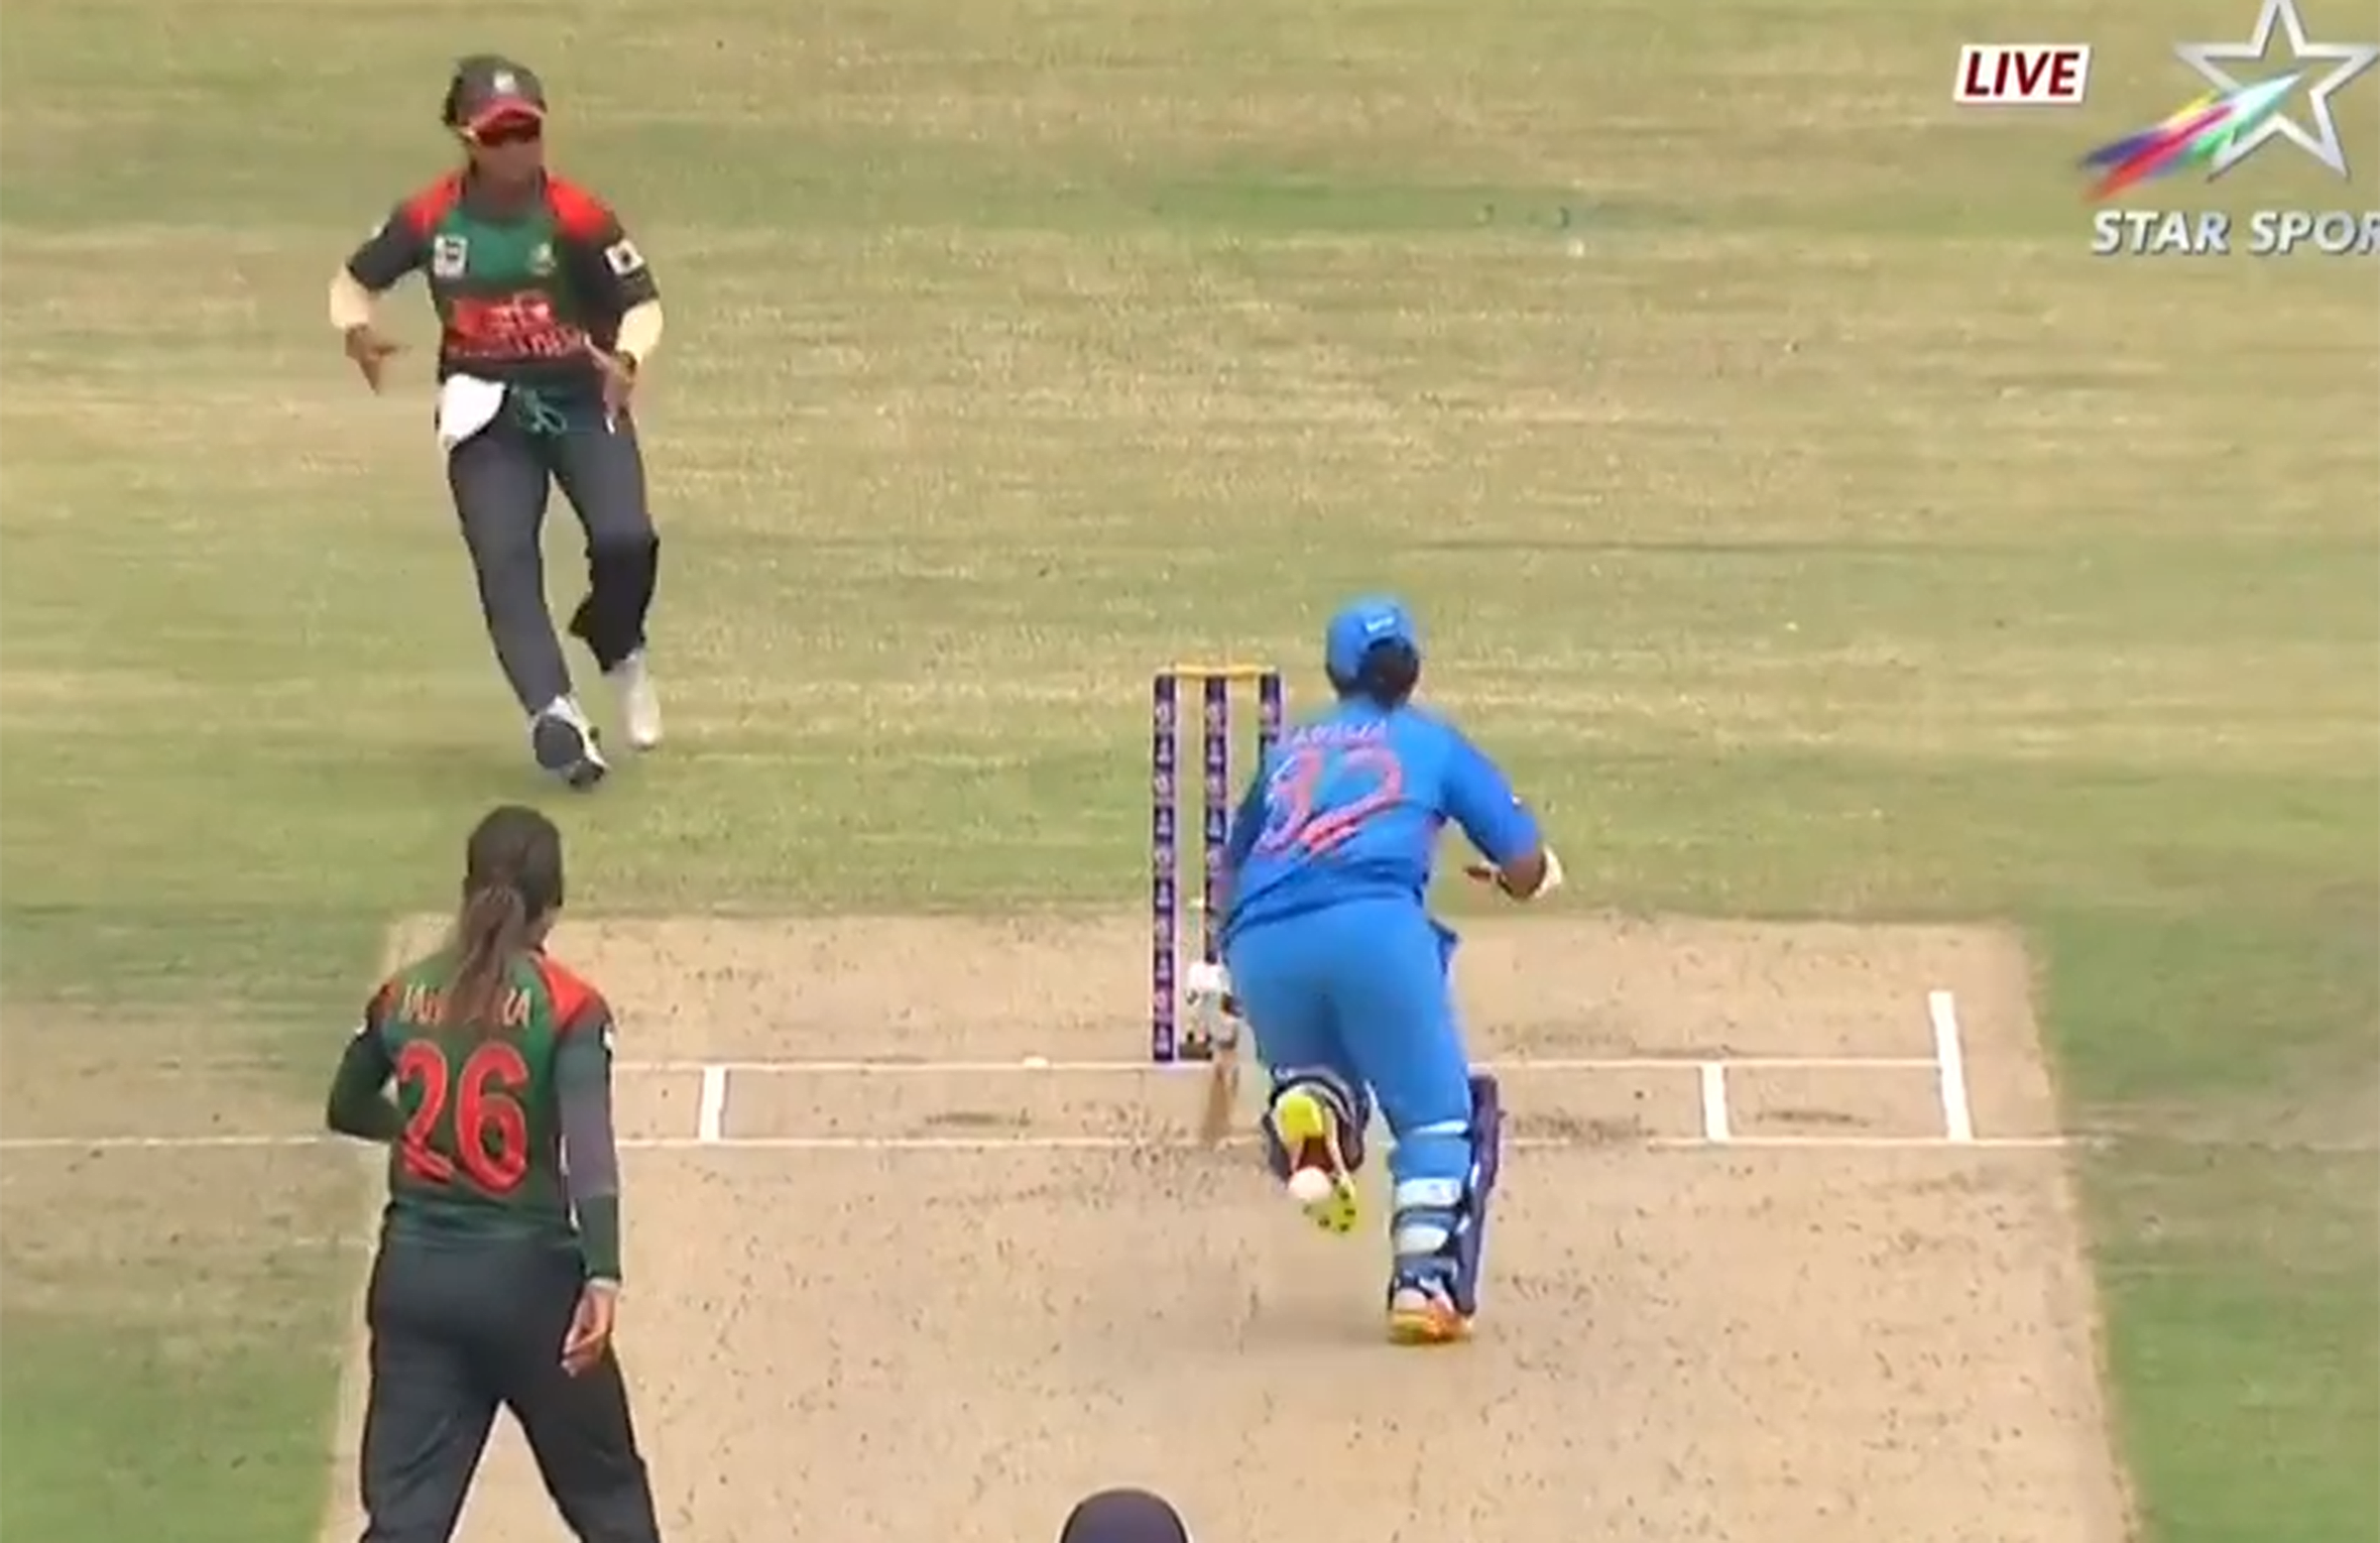 Patil blocked the ball from hitting the stumps